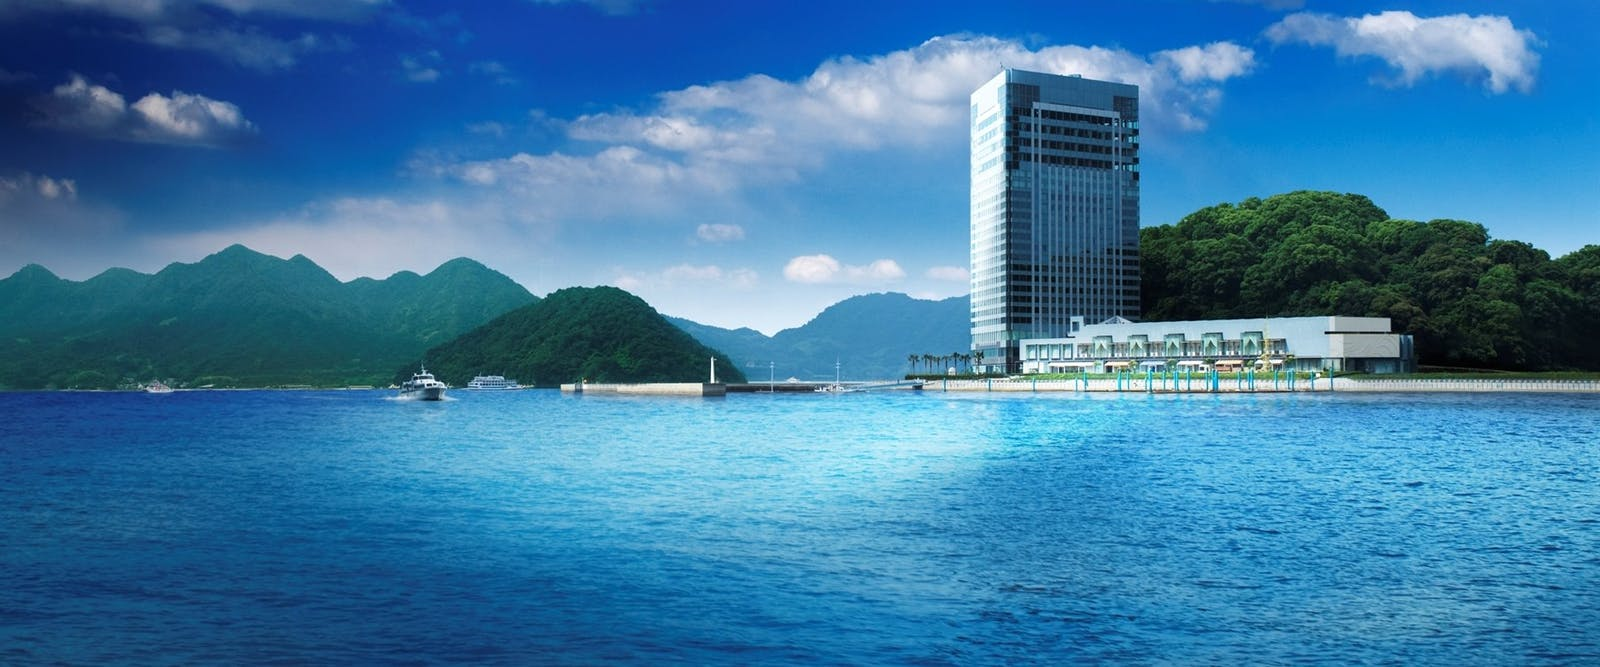 Exterior of Grand Prince Hotel Hiroshima, Japan